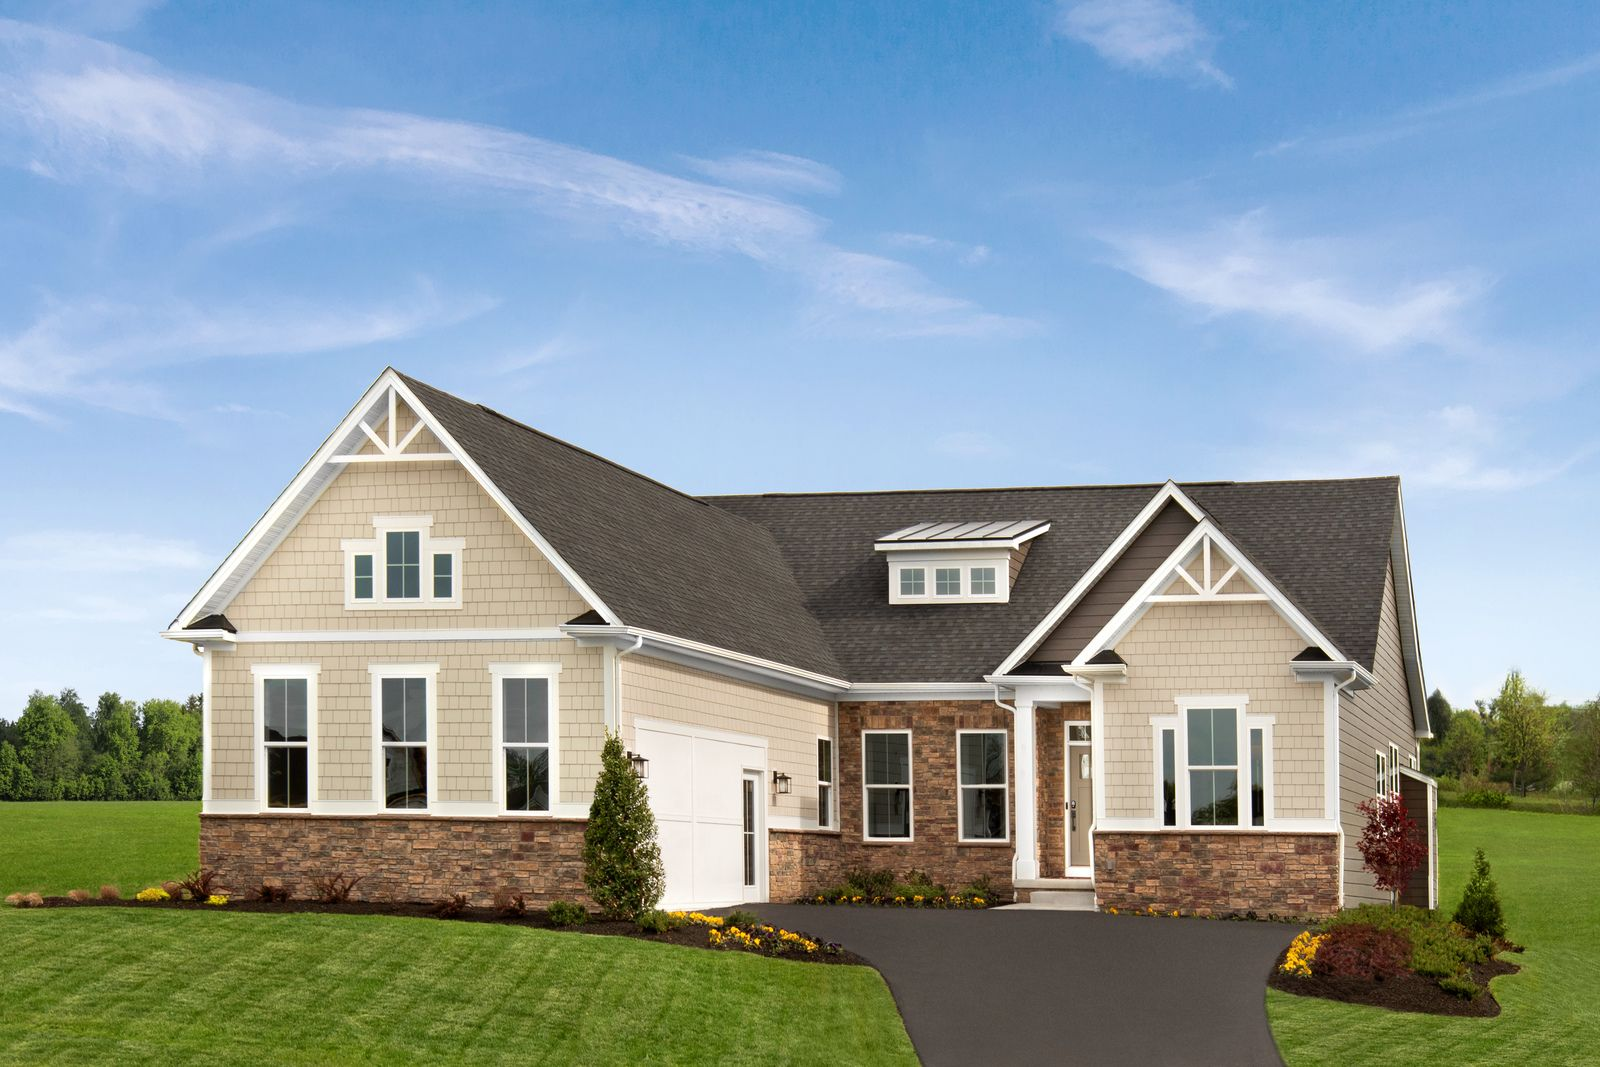 Welcome to Laurel Grove:Pine-Richland's only new community offering ranch-style homes complete with amenities & low maintenance living.Schedule your appointment today!